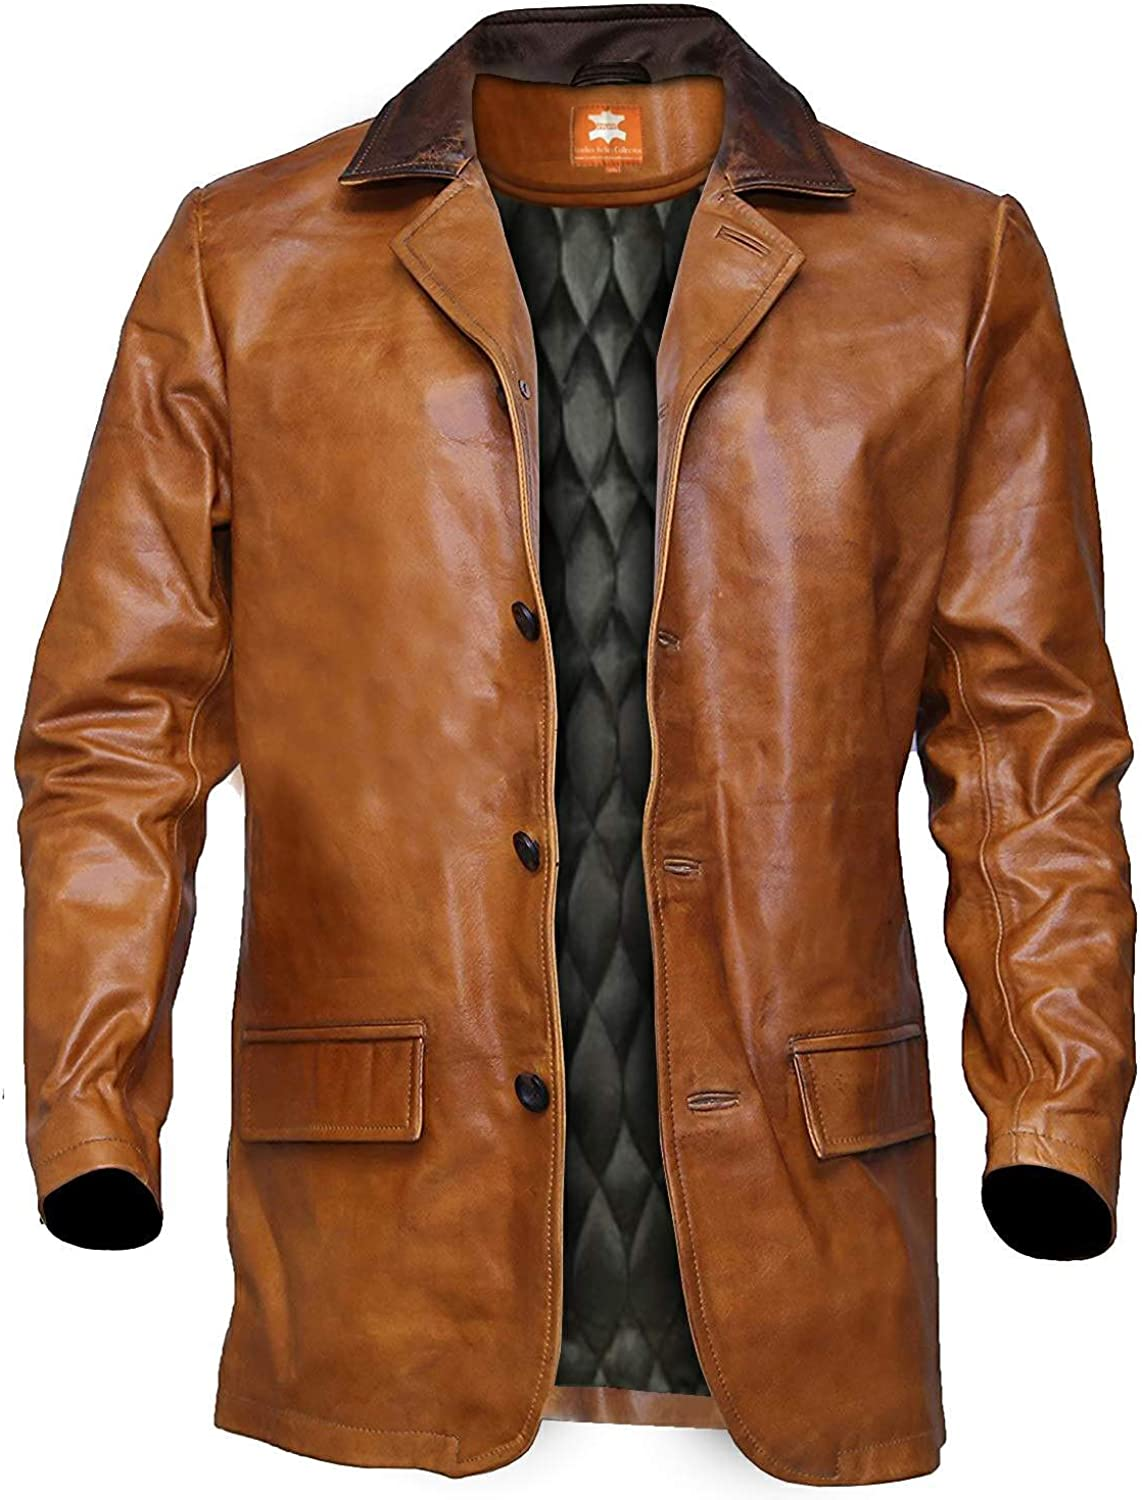 Men's Brown Distressed Leather Trench Coat, Genuine Lambskin, Vintage Style Long Coat, Winter Essentials